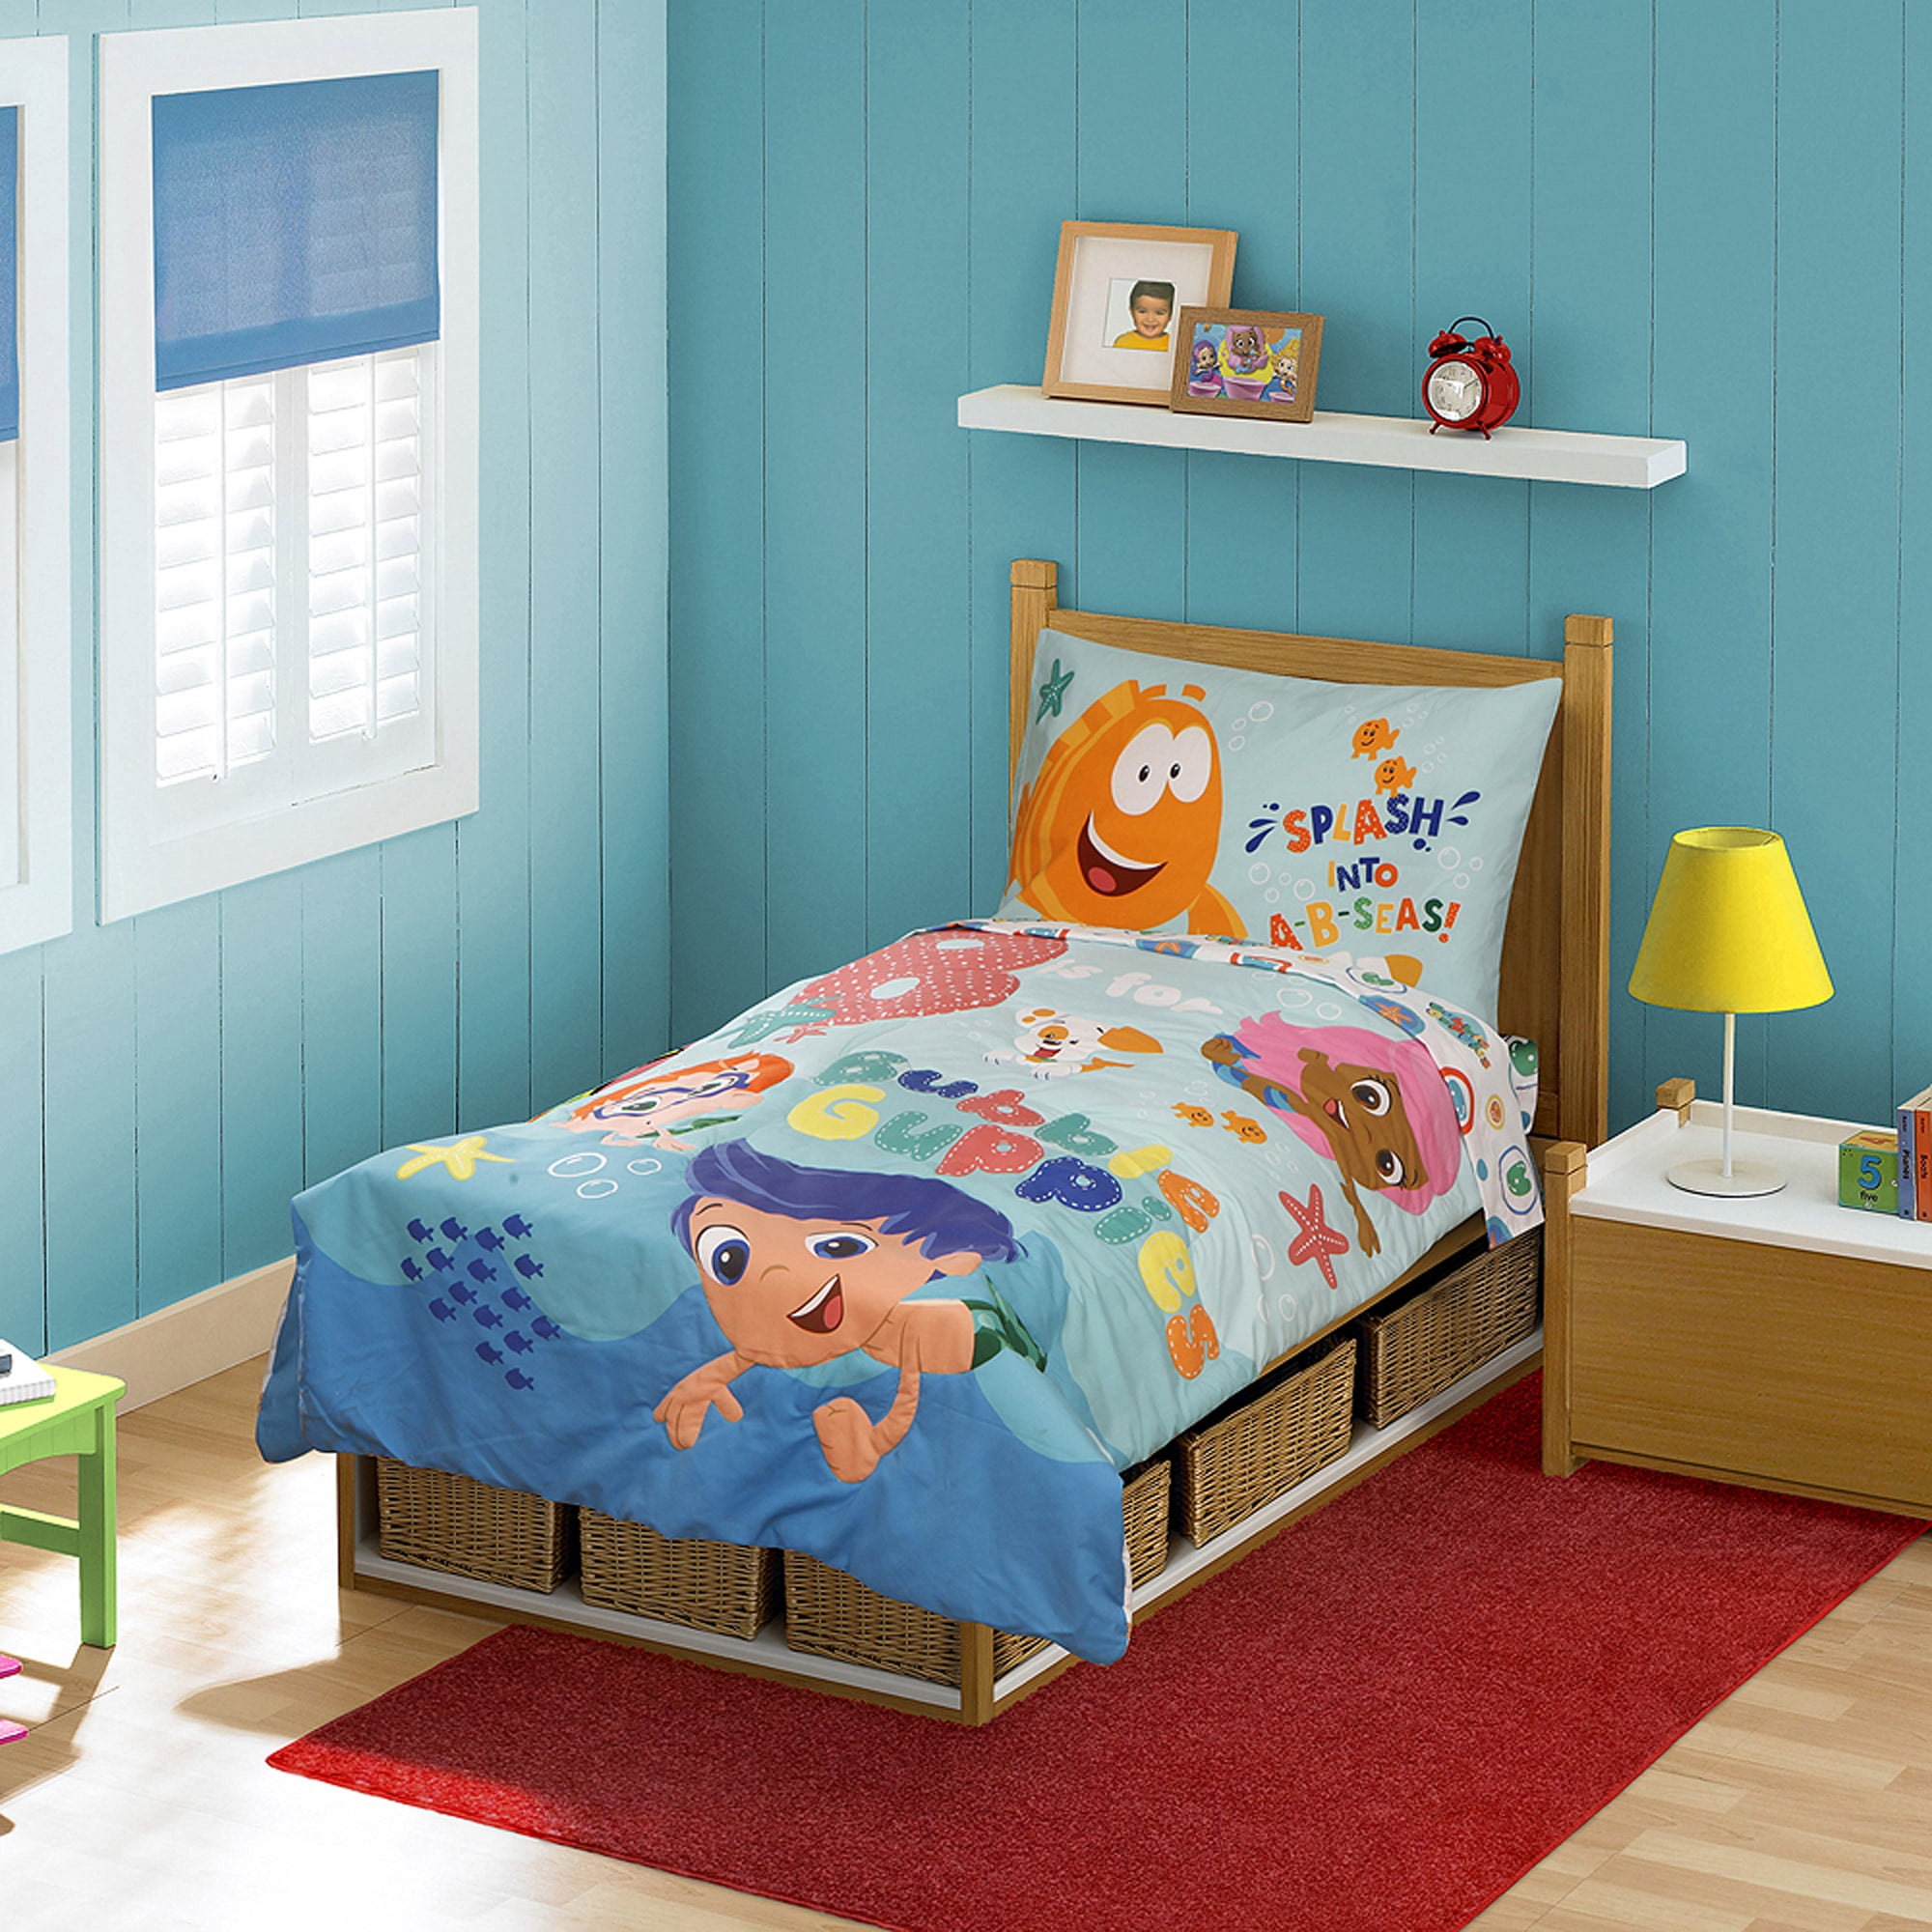 Bedroom Set  3D Bubble Guppies  2017. Bubble Guppies Toddler Bed Set   My Blog